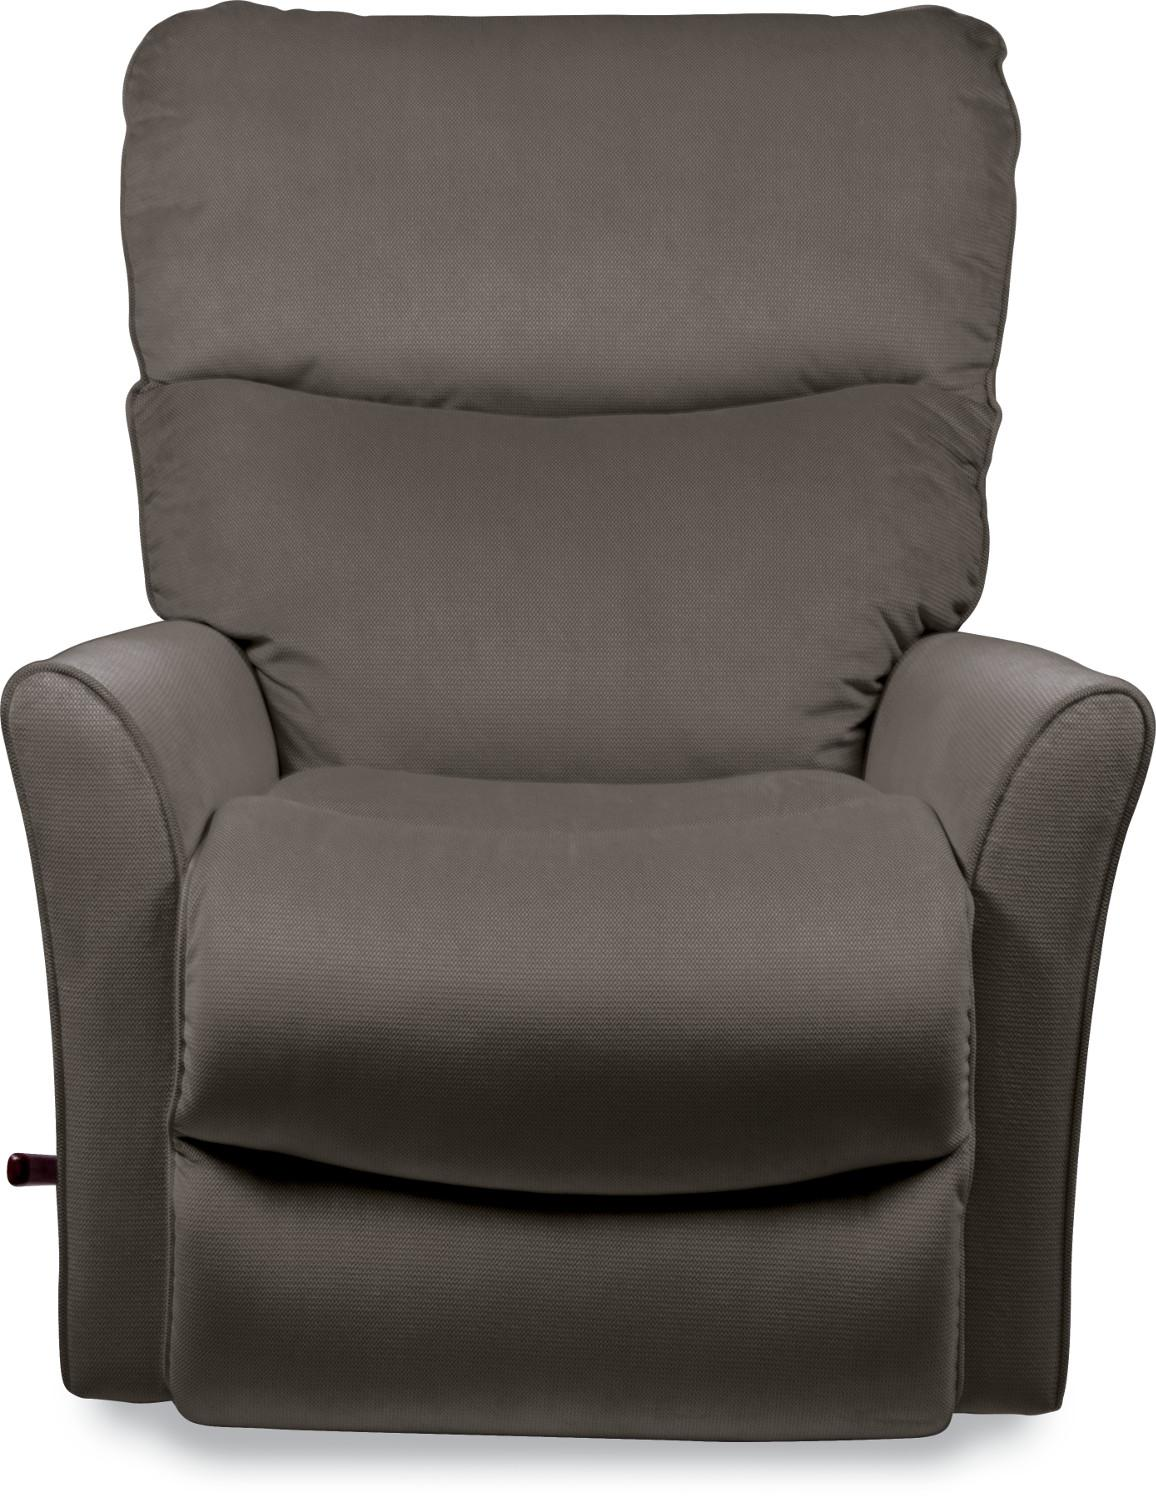 Lazy Boy Swivel Chair Small Swivel Rocker Recliner Irving Leather Swivel